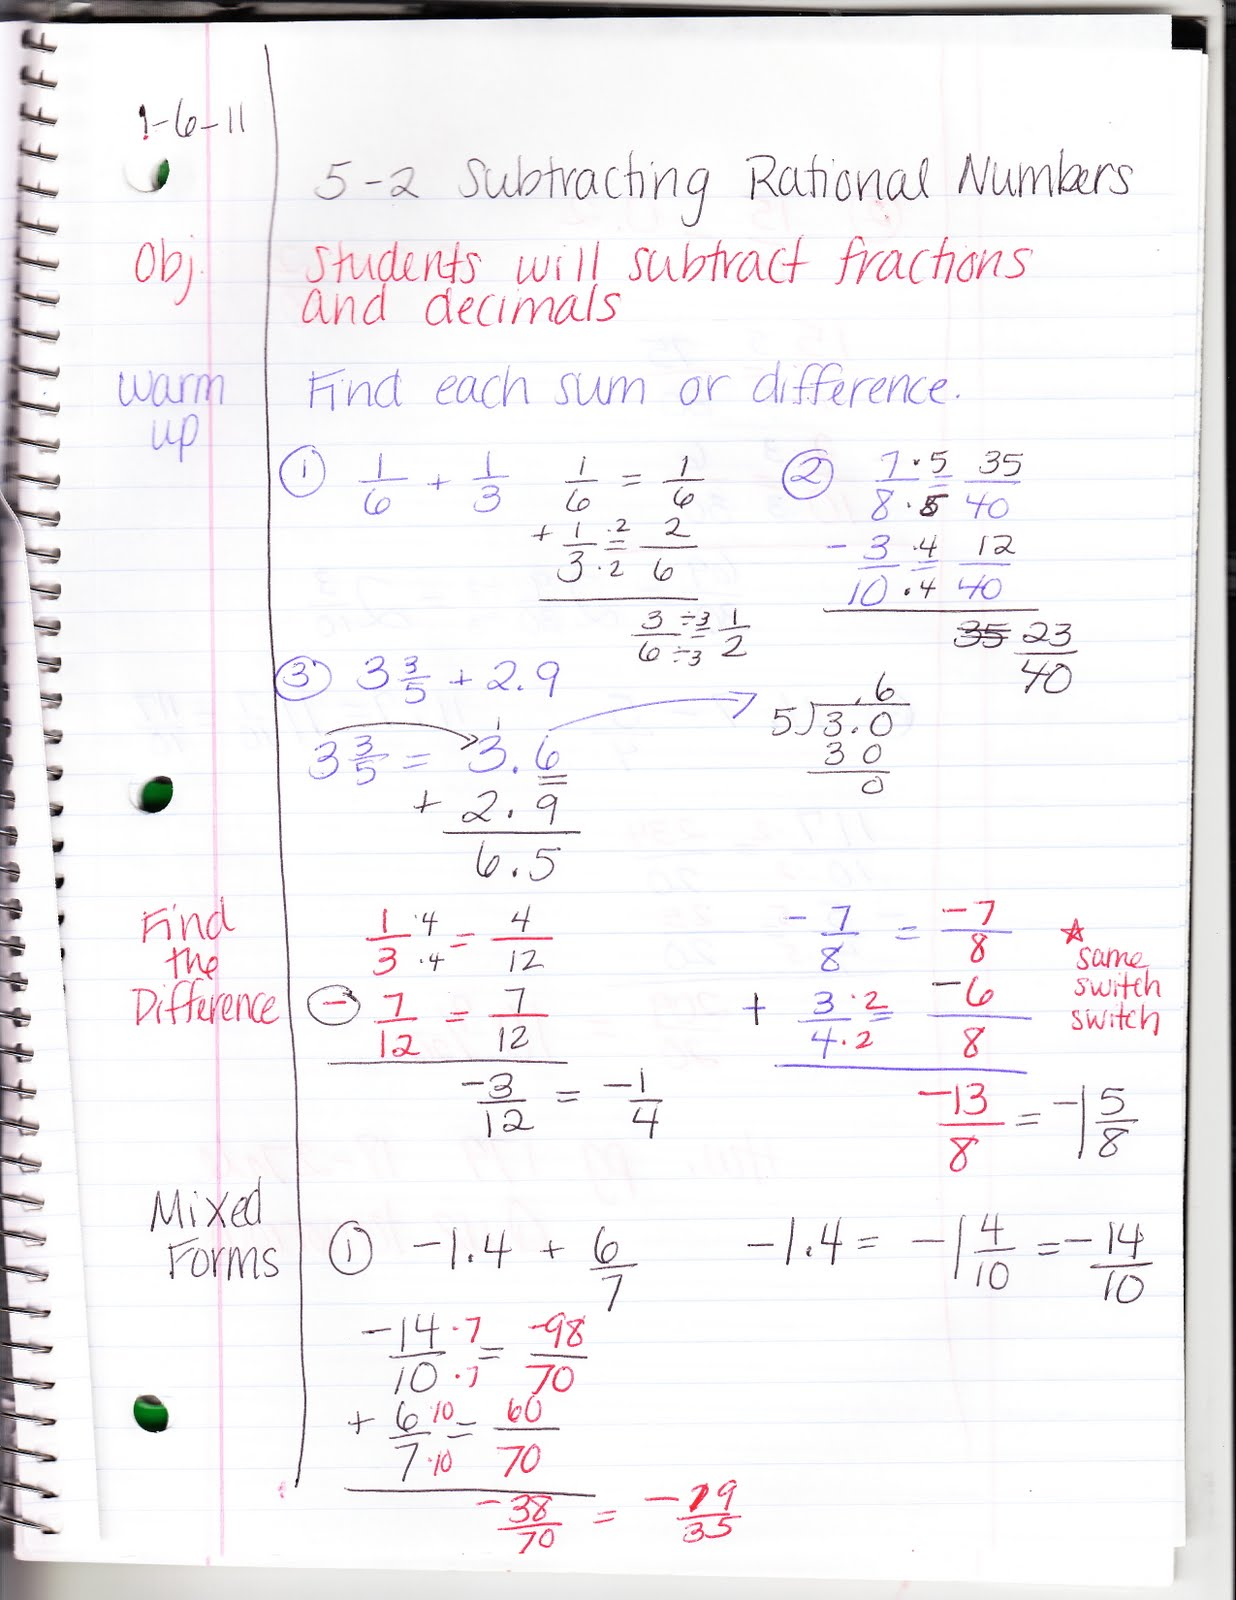 math worksheet : rational numbers related keywords  suggestions  rational numbers  : Adding And Subtracting Rational Numbers Worksheets